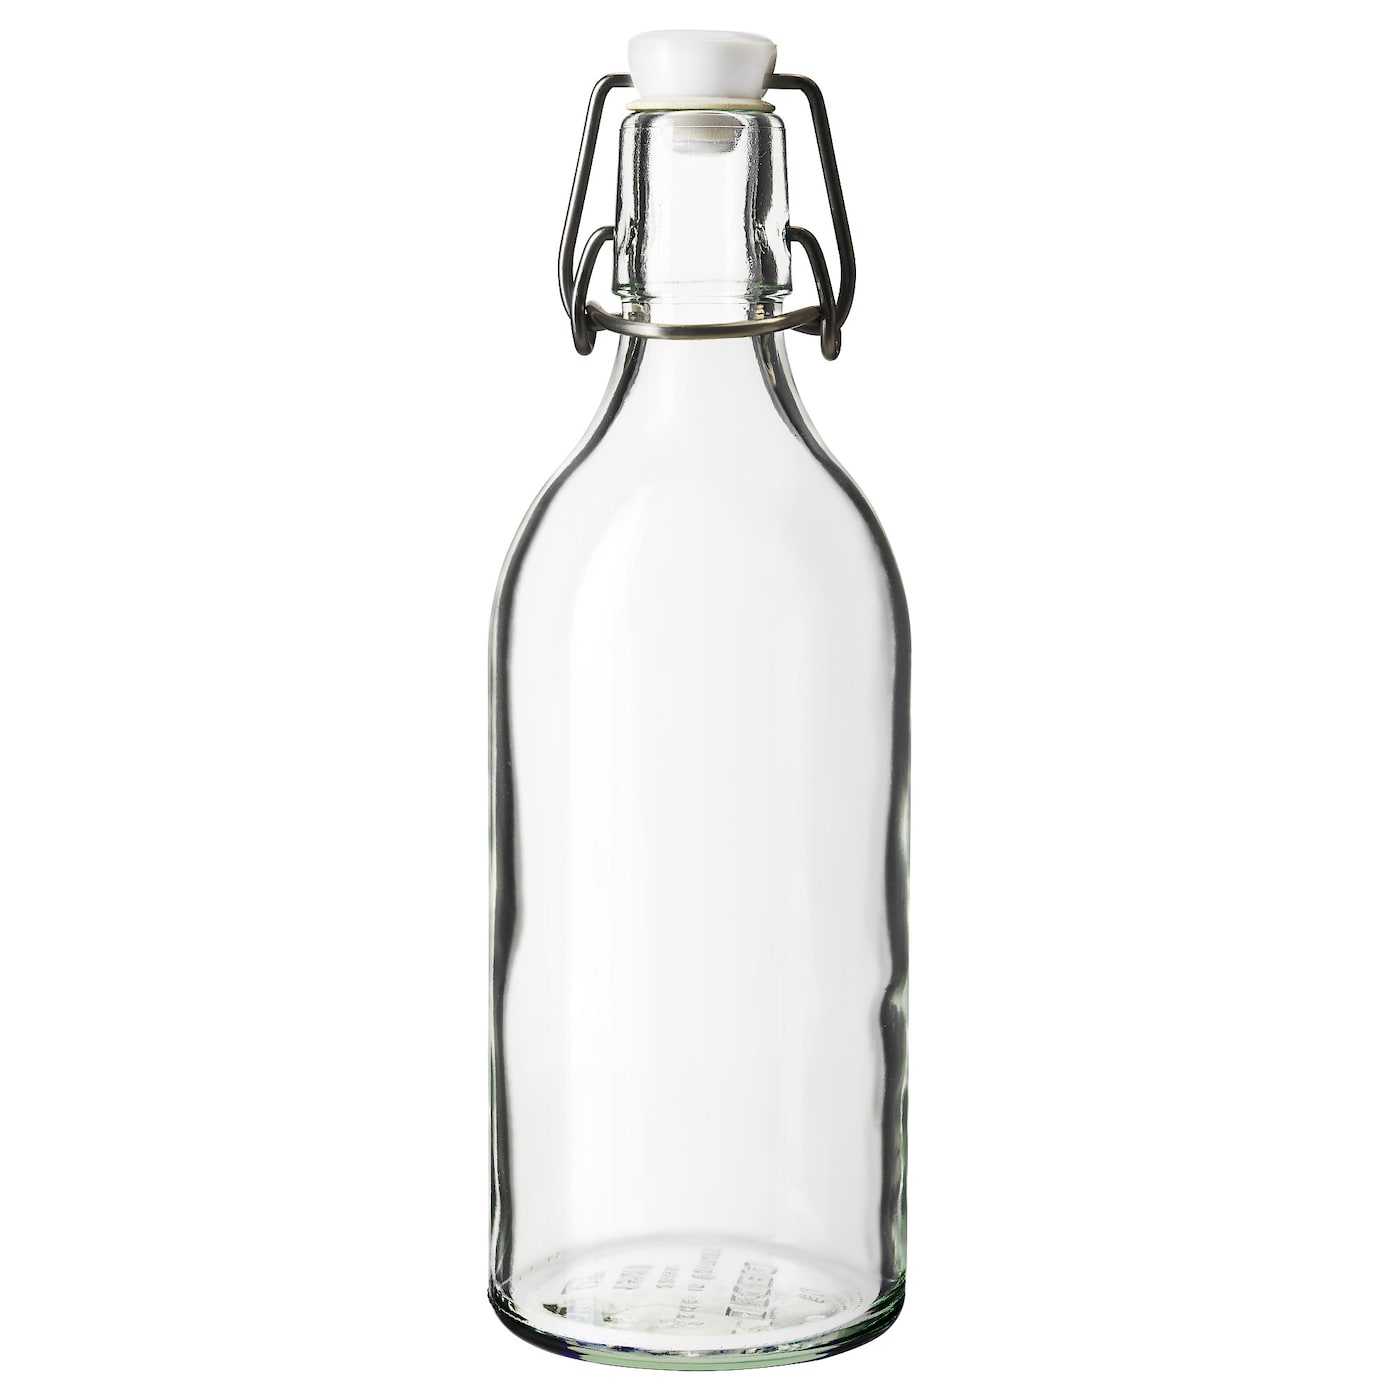 IKEA KORKEN bottle with stopper Tight-fitting stopper that prevents leakage.